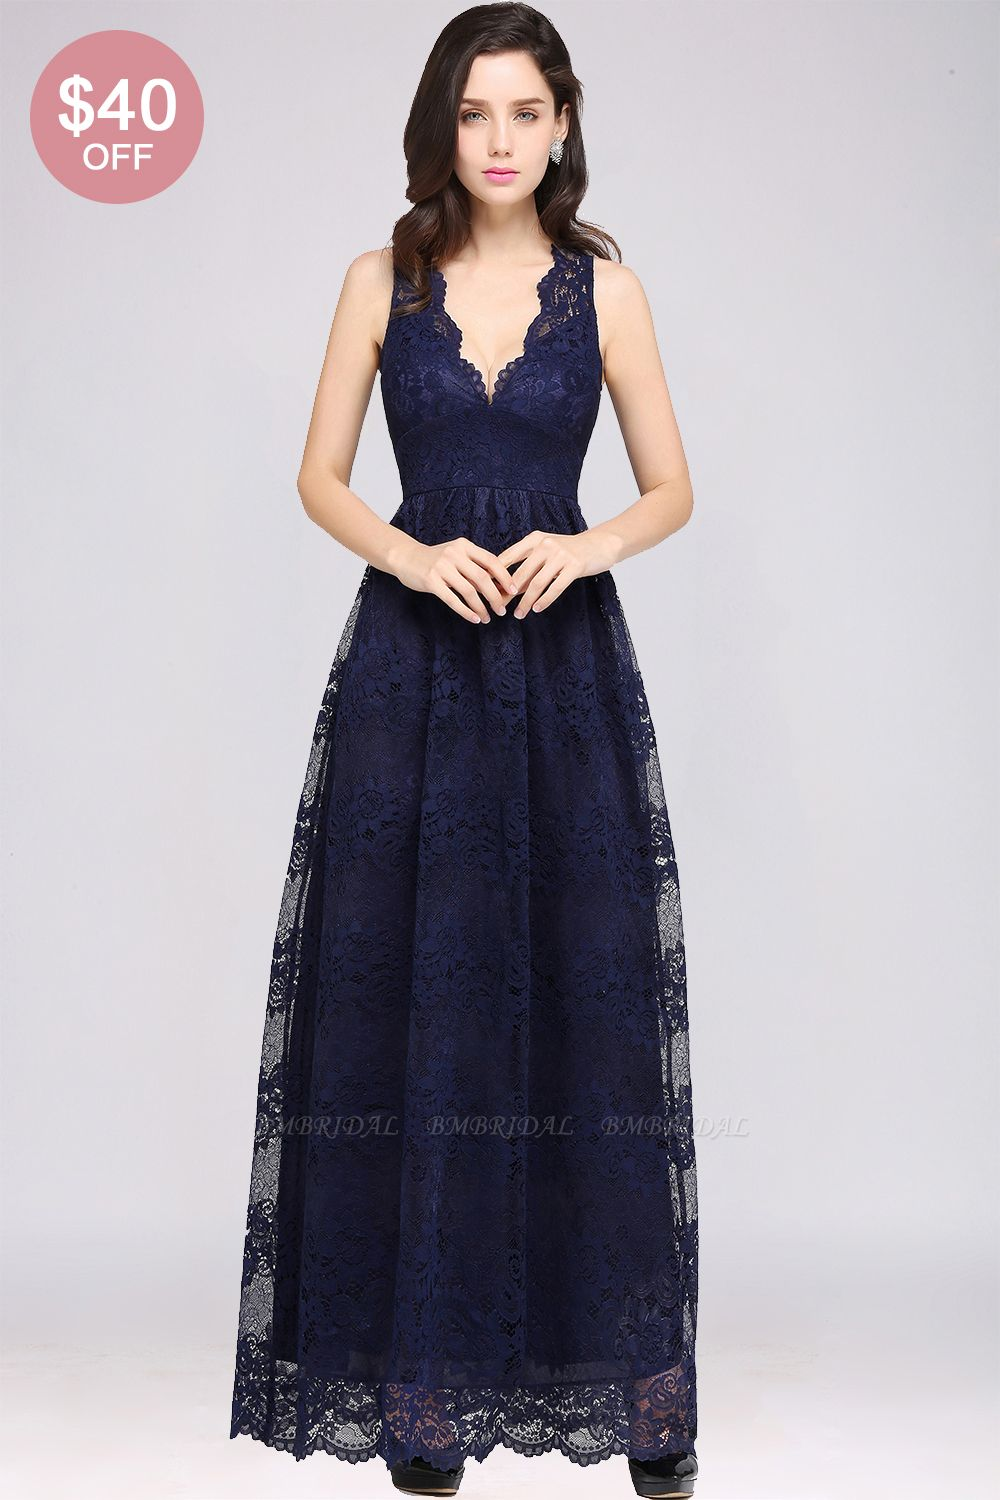 BMbridal Chic Sheath V-Neck Navy Lace Bridesmaid Dresses Online In Stock